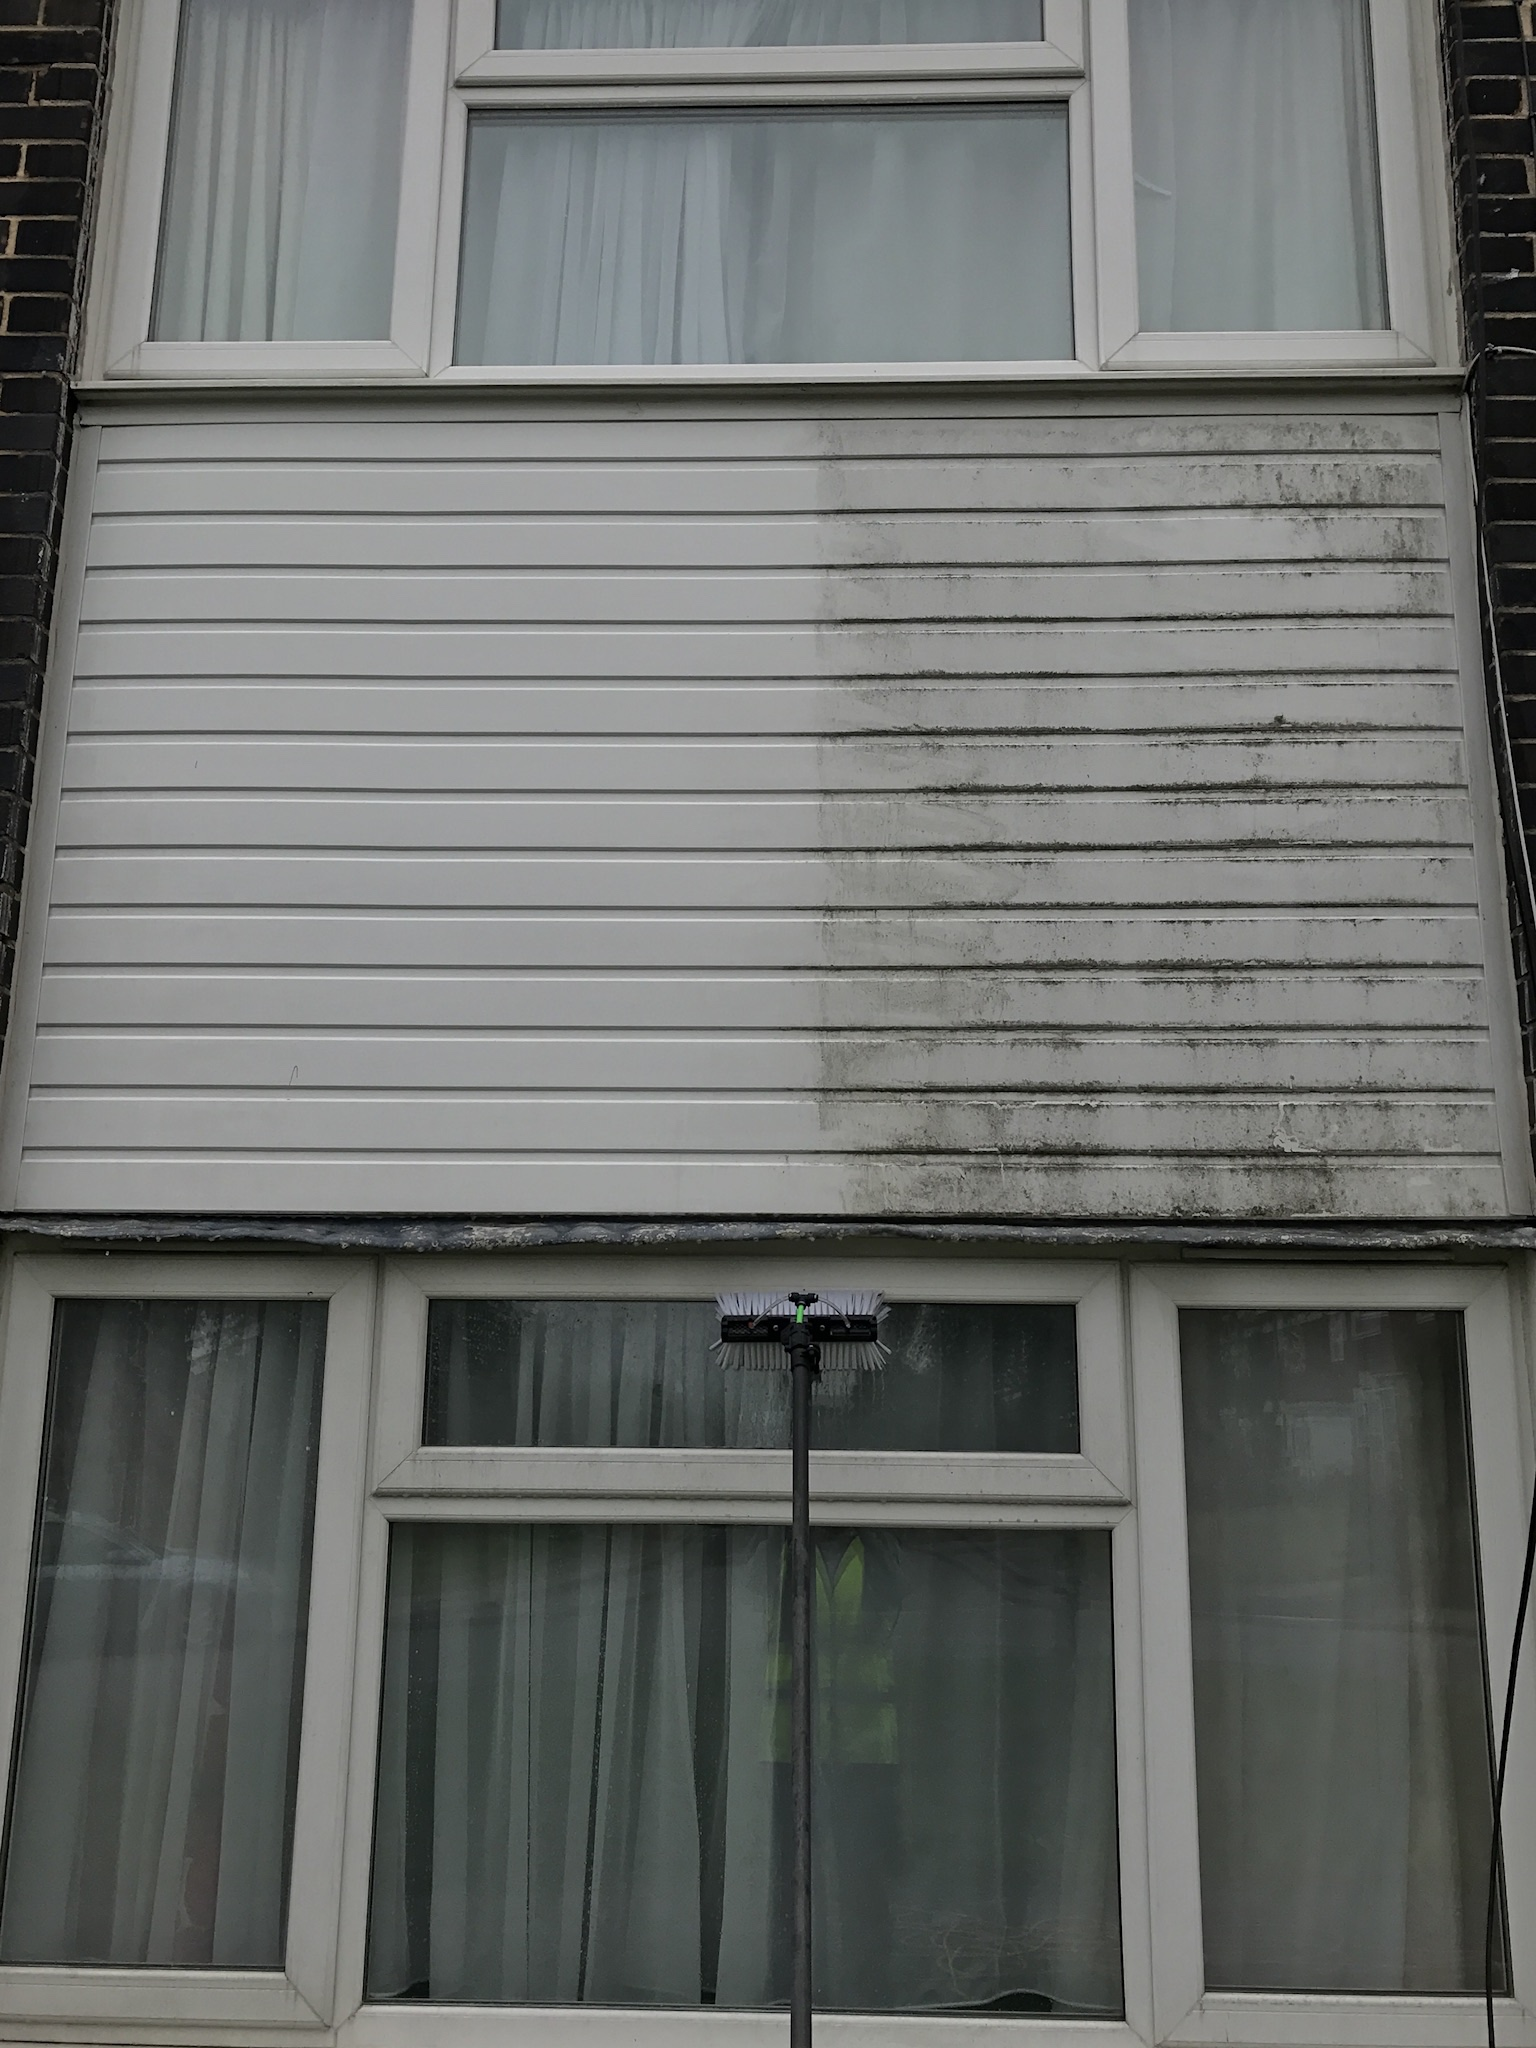 fascias, soffits, and gutters - Not everyone has a conservatory, but we all haver fascias and guttering. Similar to the conservatory, over time the gutters can start to look faded and dirty. We are professionals in gutter cleaning in Luton.Using the same solution as we use for the conservatory's, we spray the gutters and fascias with this solution, then get to brushing and rinsing in order to give your gutters that 'as new' look. And thanks to our investment in professional equipment we can do all of this from the safety of the ground. Book us today! You won't be disappointed.